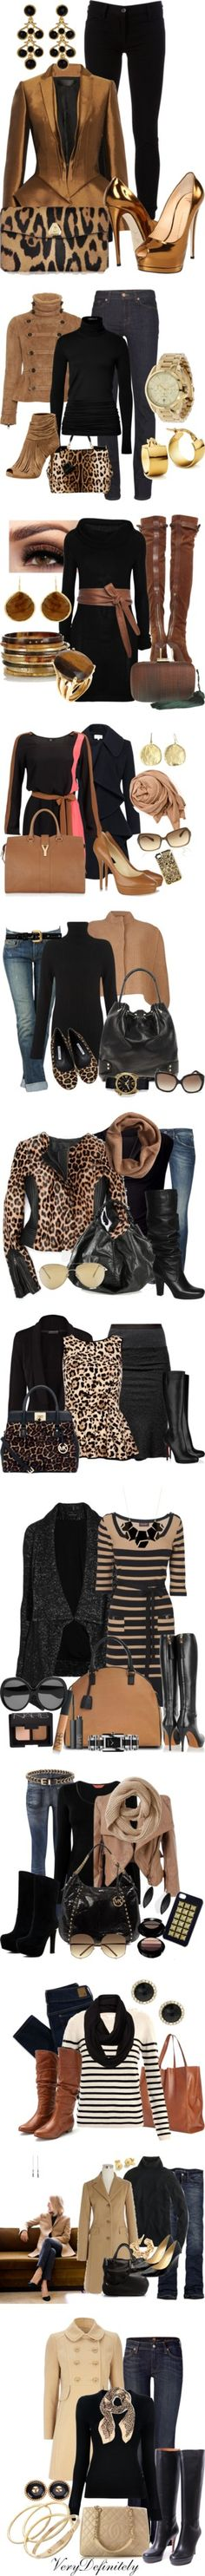 """""""A Little Camel With Your Black."""" by esha2001 ❤ liked on Polyvore"""